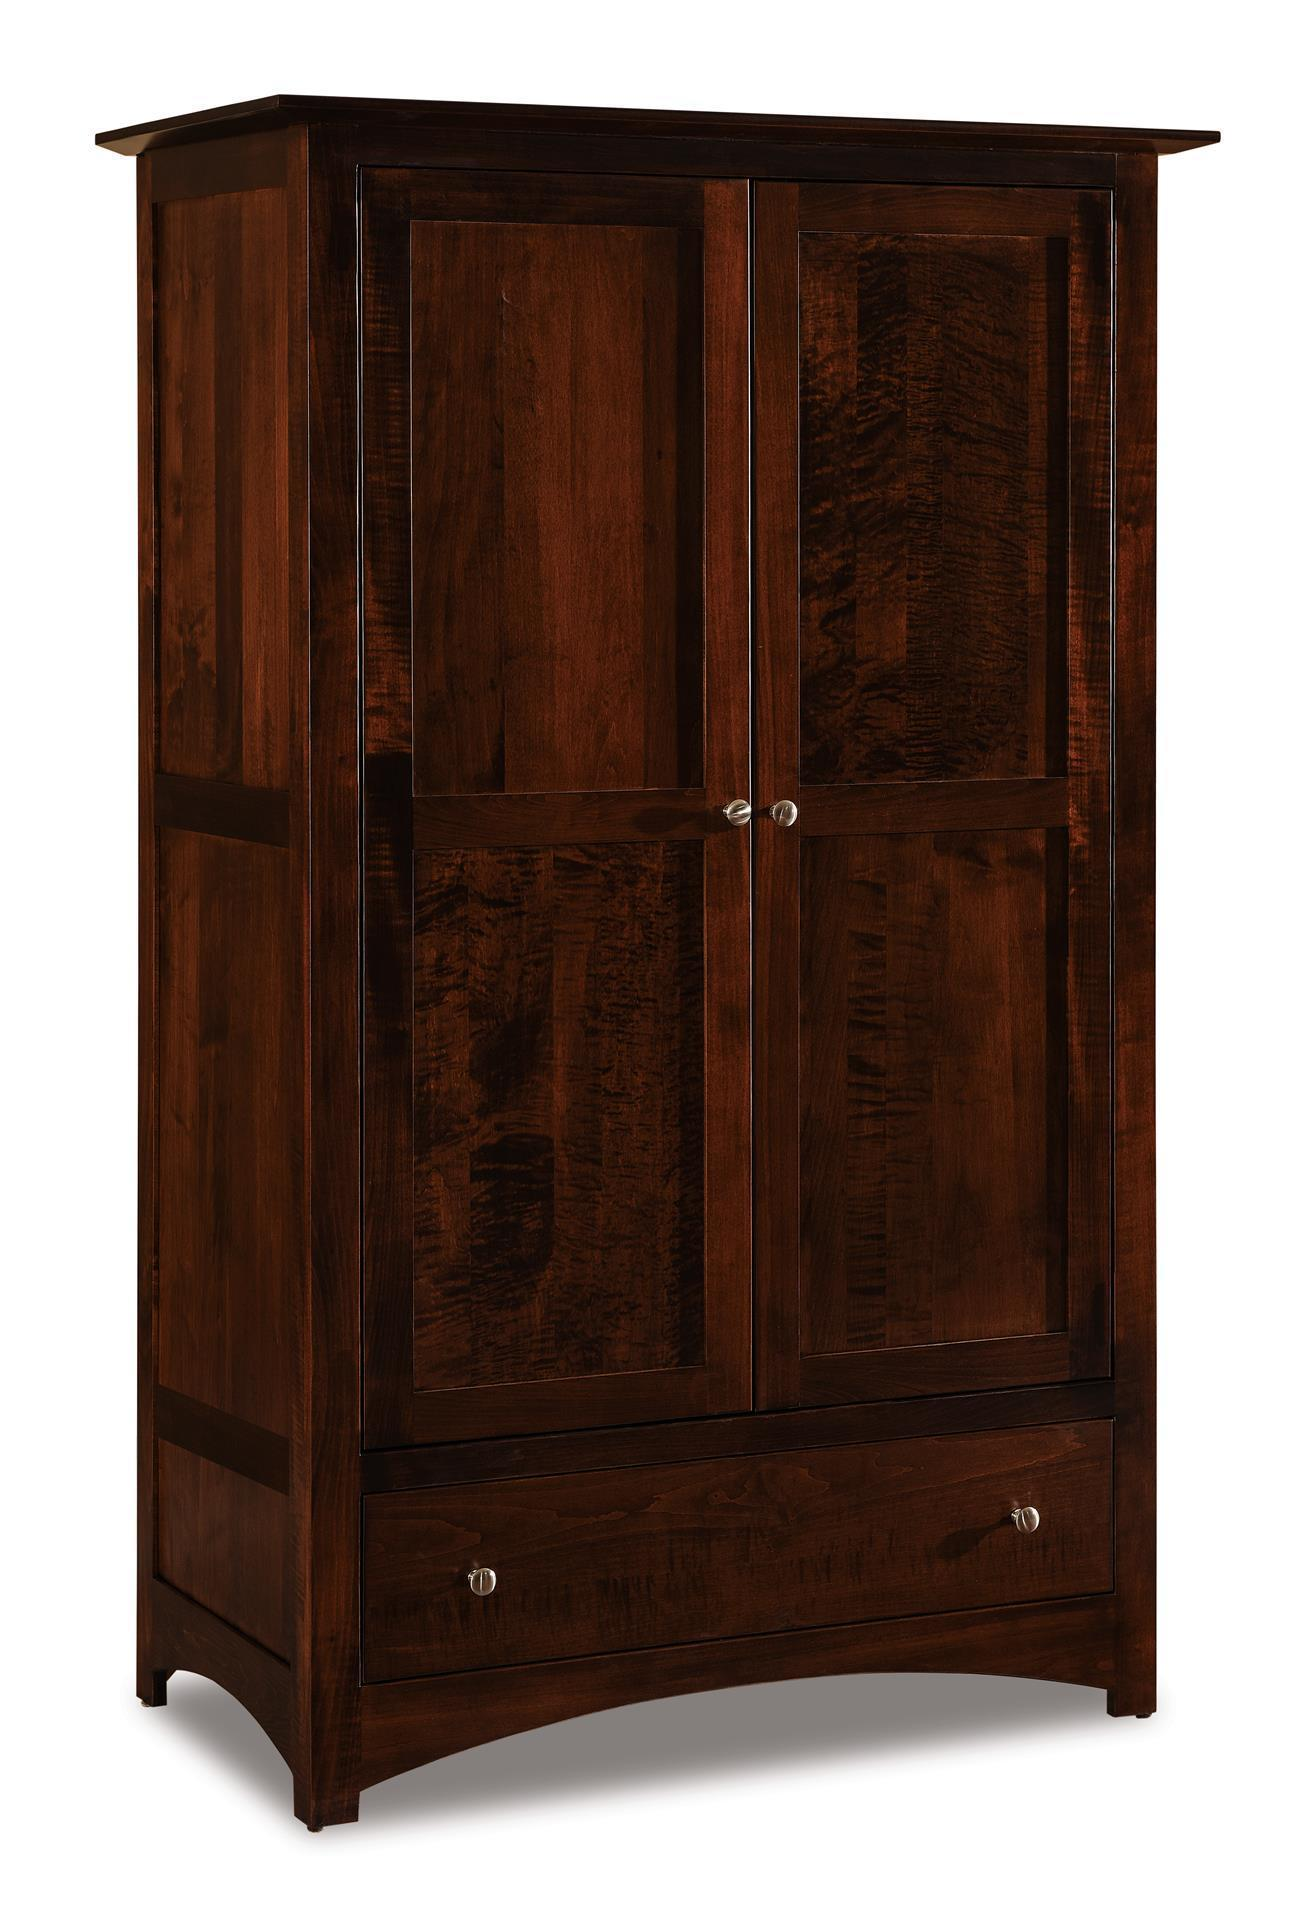 Finland Wardrobe Armoire from DutchCrafters Amish Furniture